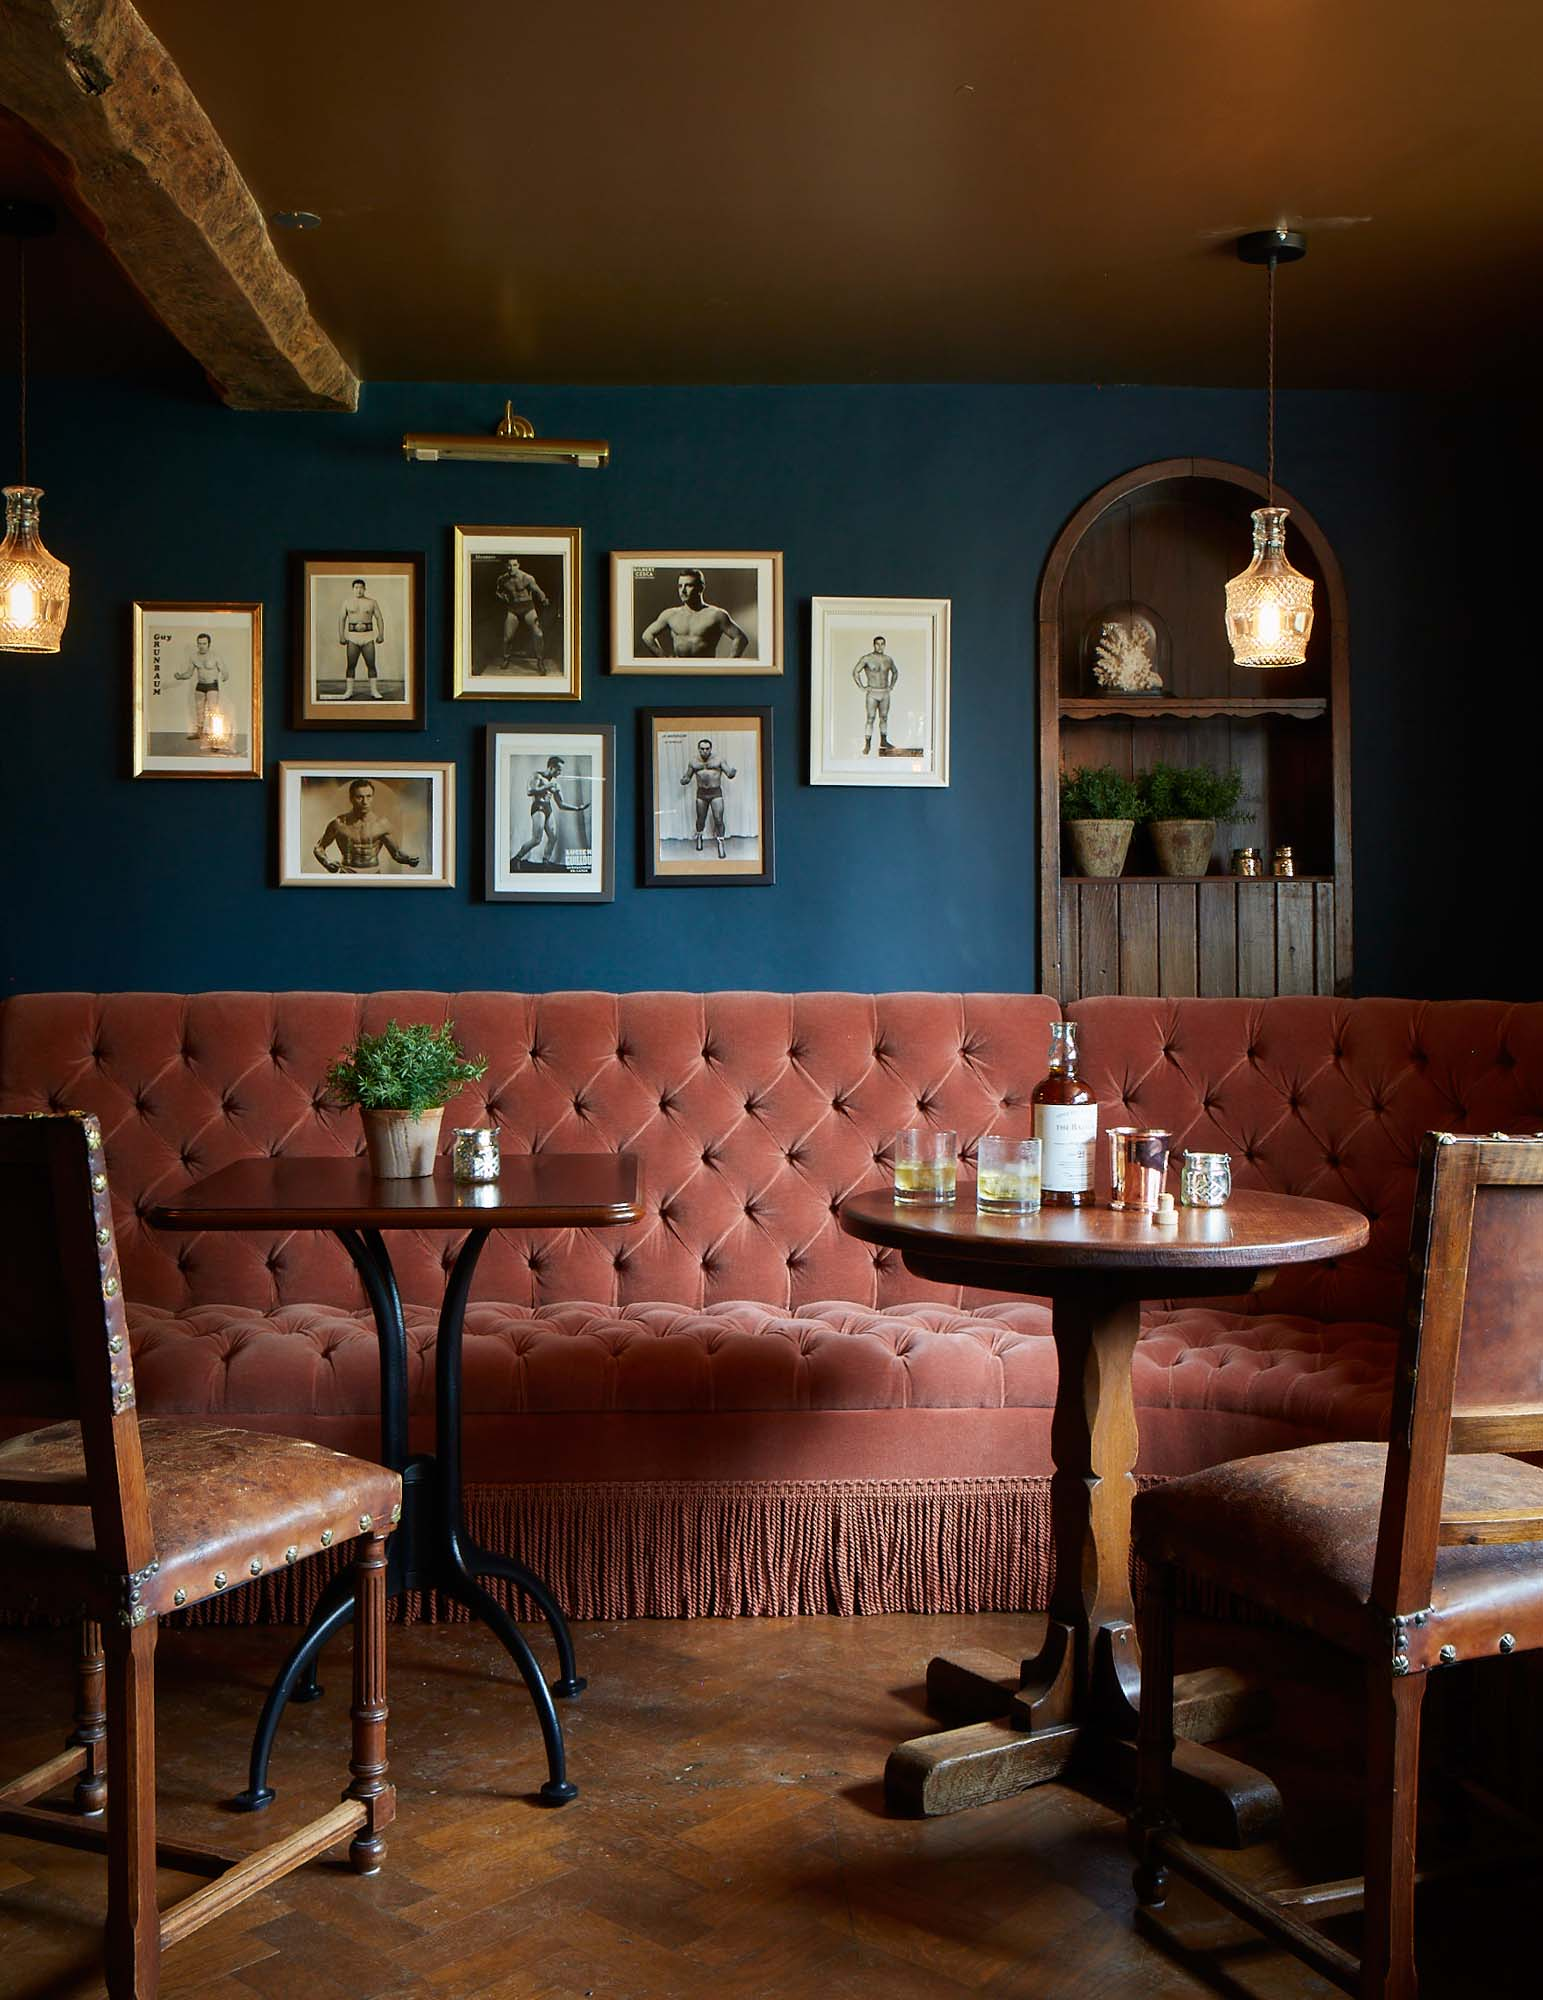 Sumptuous seating in the restaurant